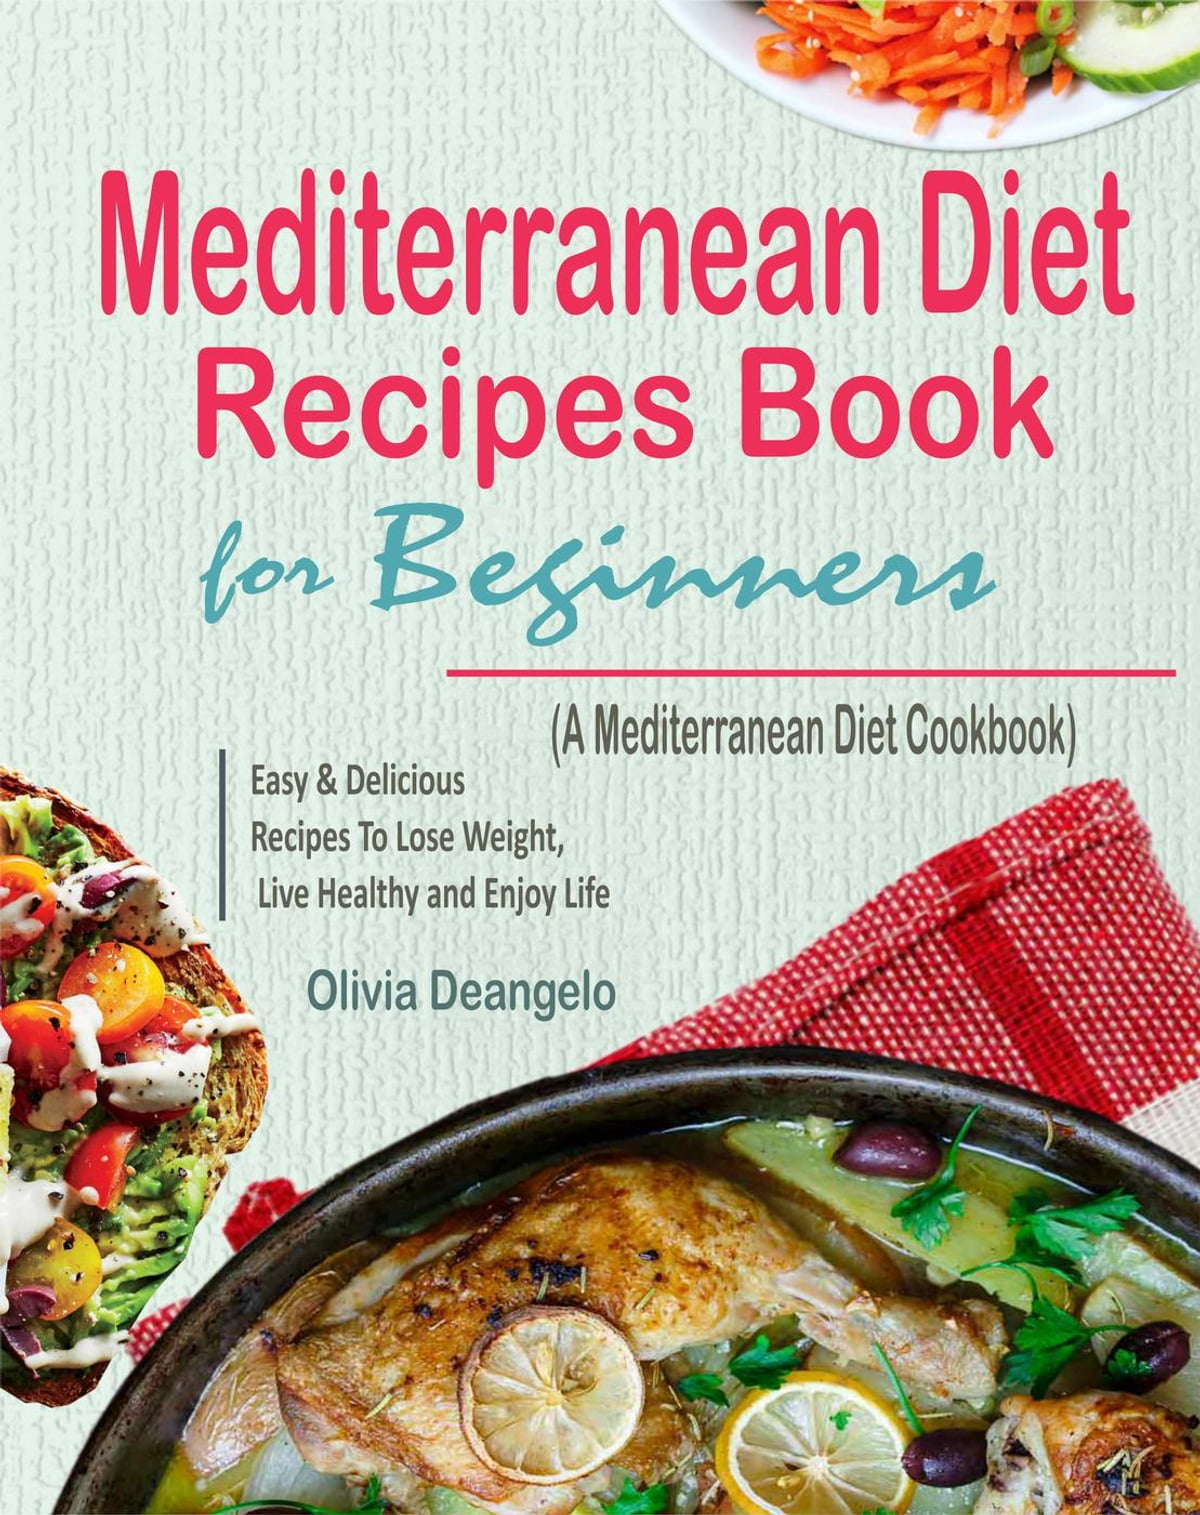 Mediterranean Diet Recipes Book For Beginners: with Easy & Delicious  Recipes To Lose Weight, Live Healthy and Enjoy Life (A Mediterranean Diet